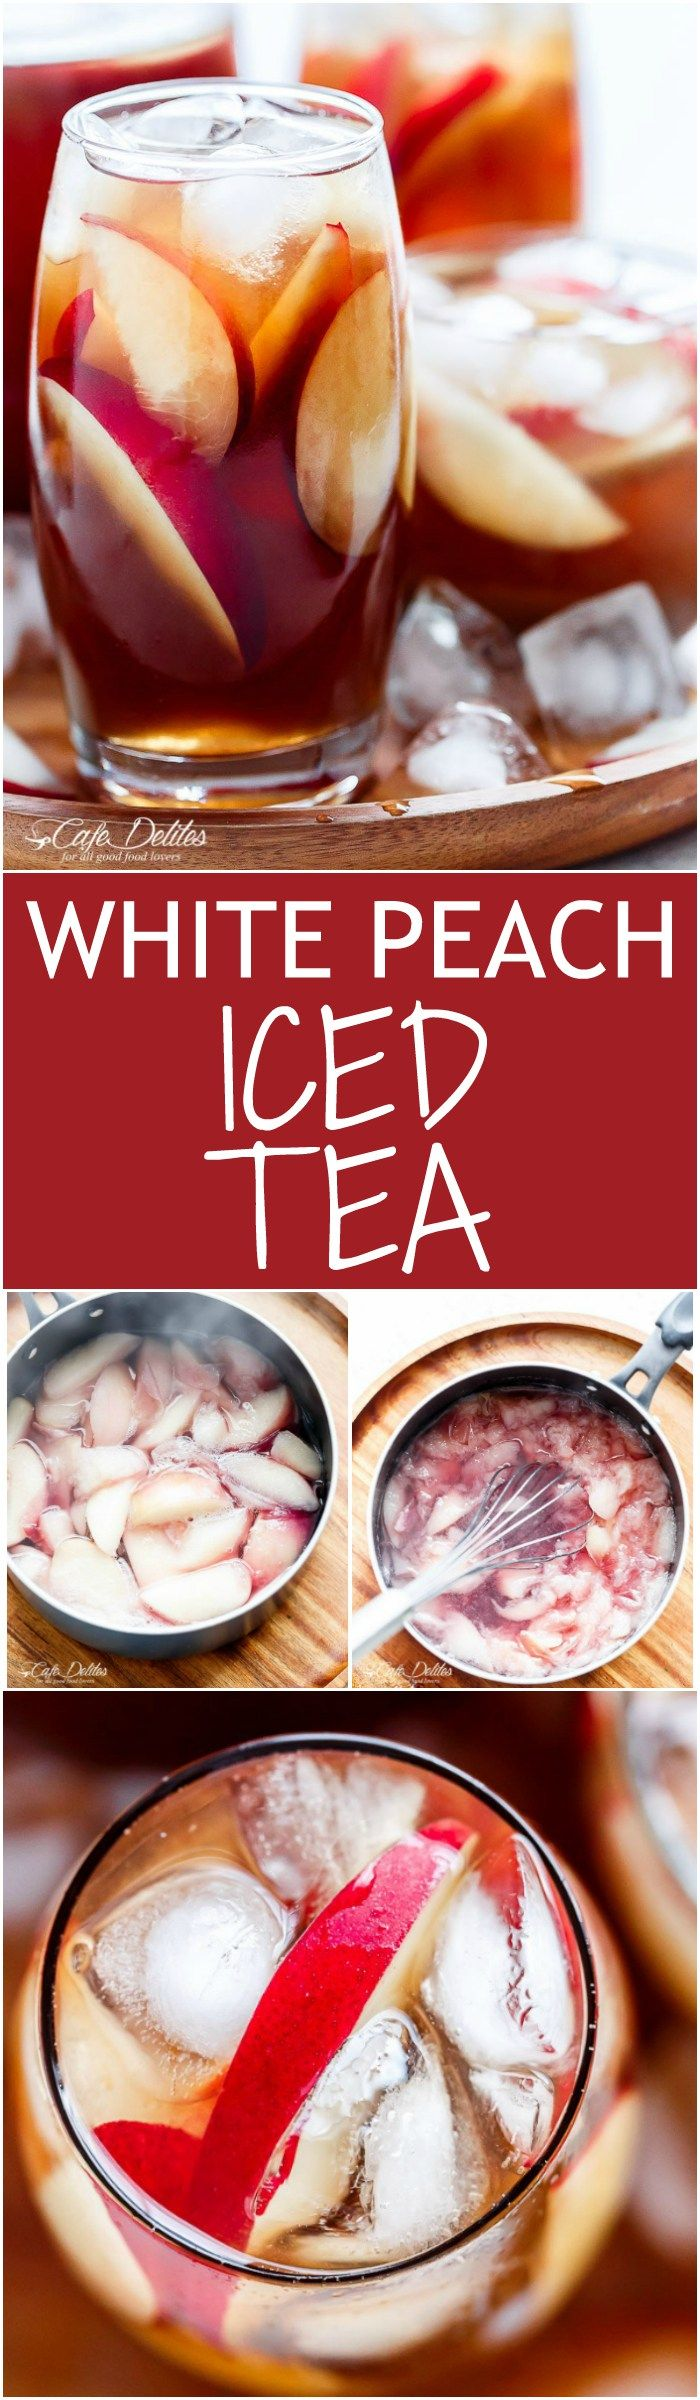 A simple fresh and homemade white peach iced tea that's better than any store bought iced tea and so addictive it will become your new favourite drink!